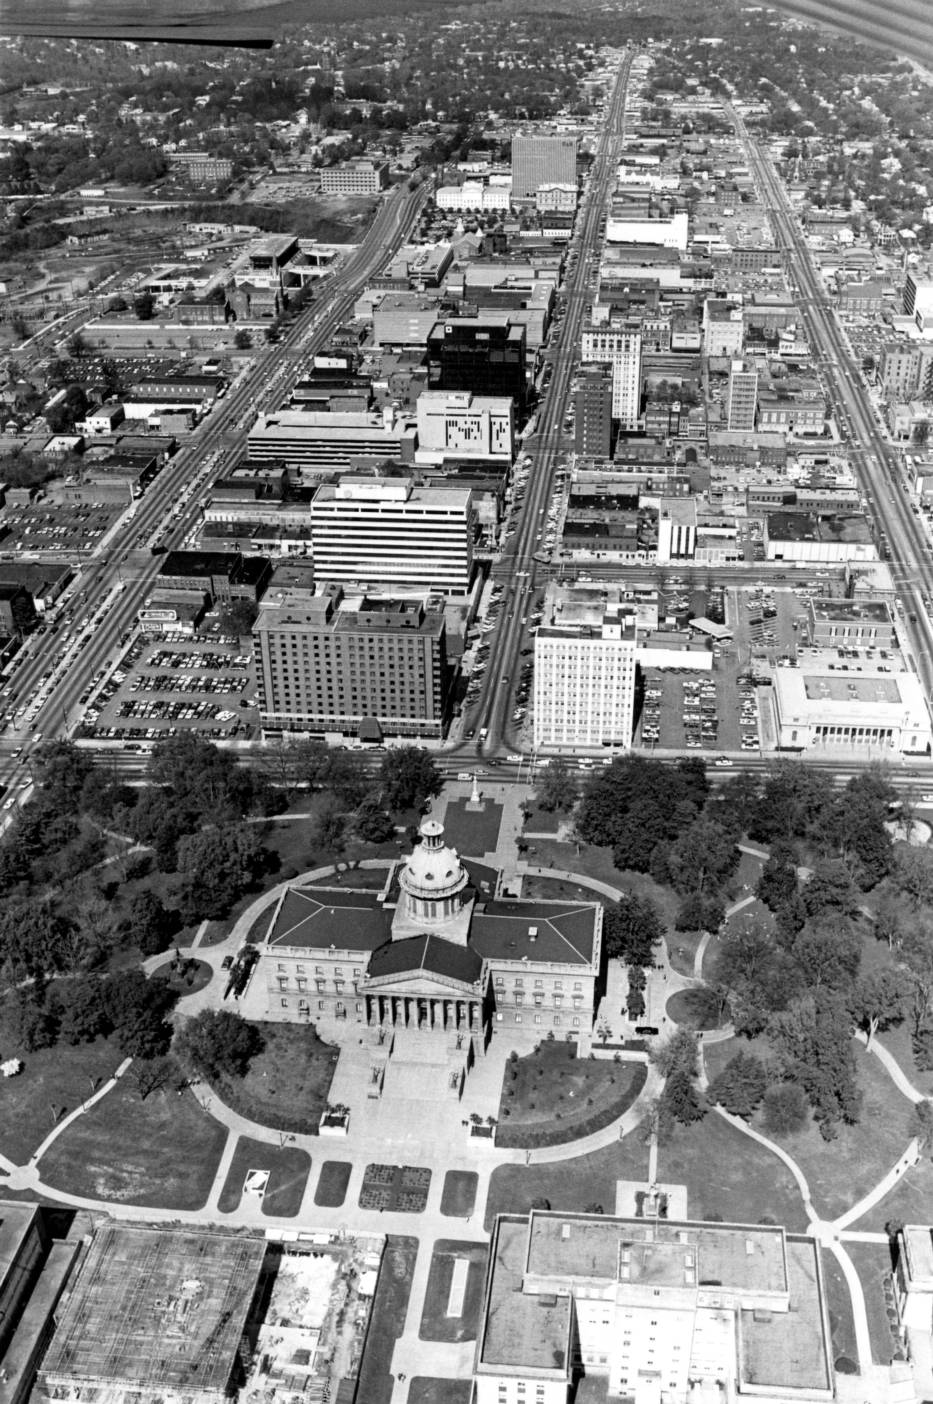 Aerial view of the State House and downtown Columbia - The